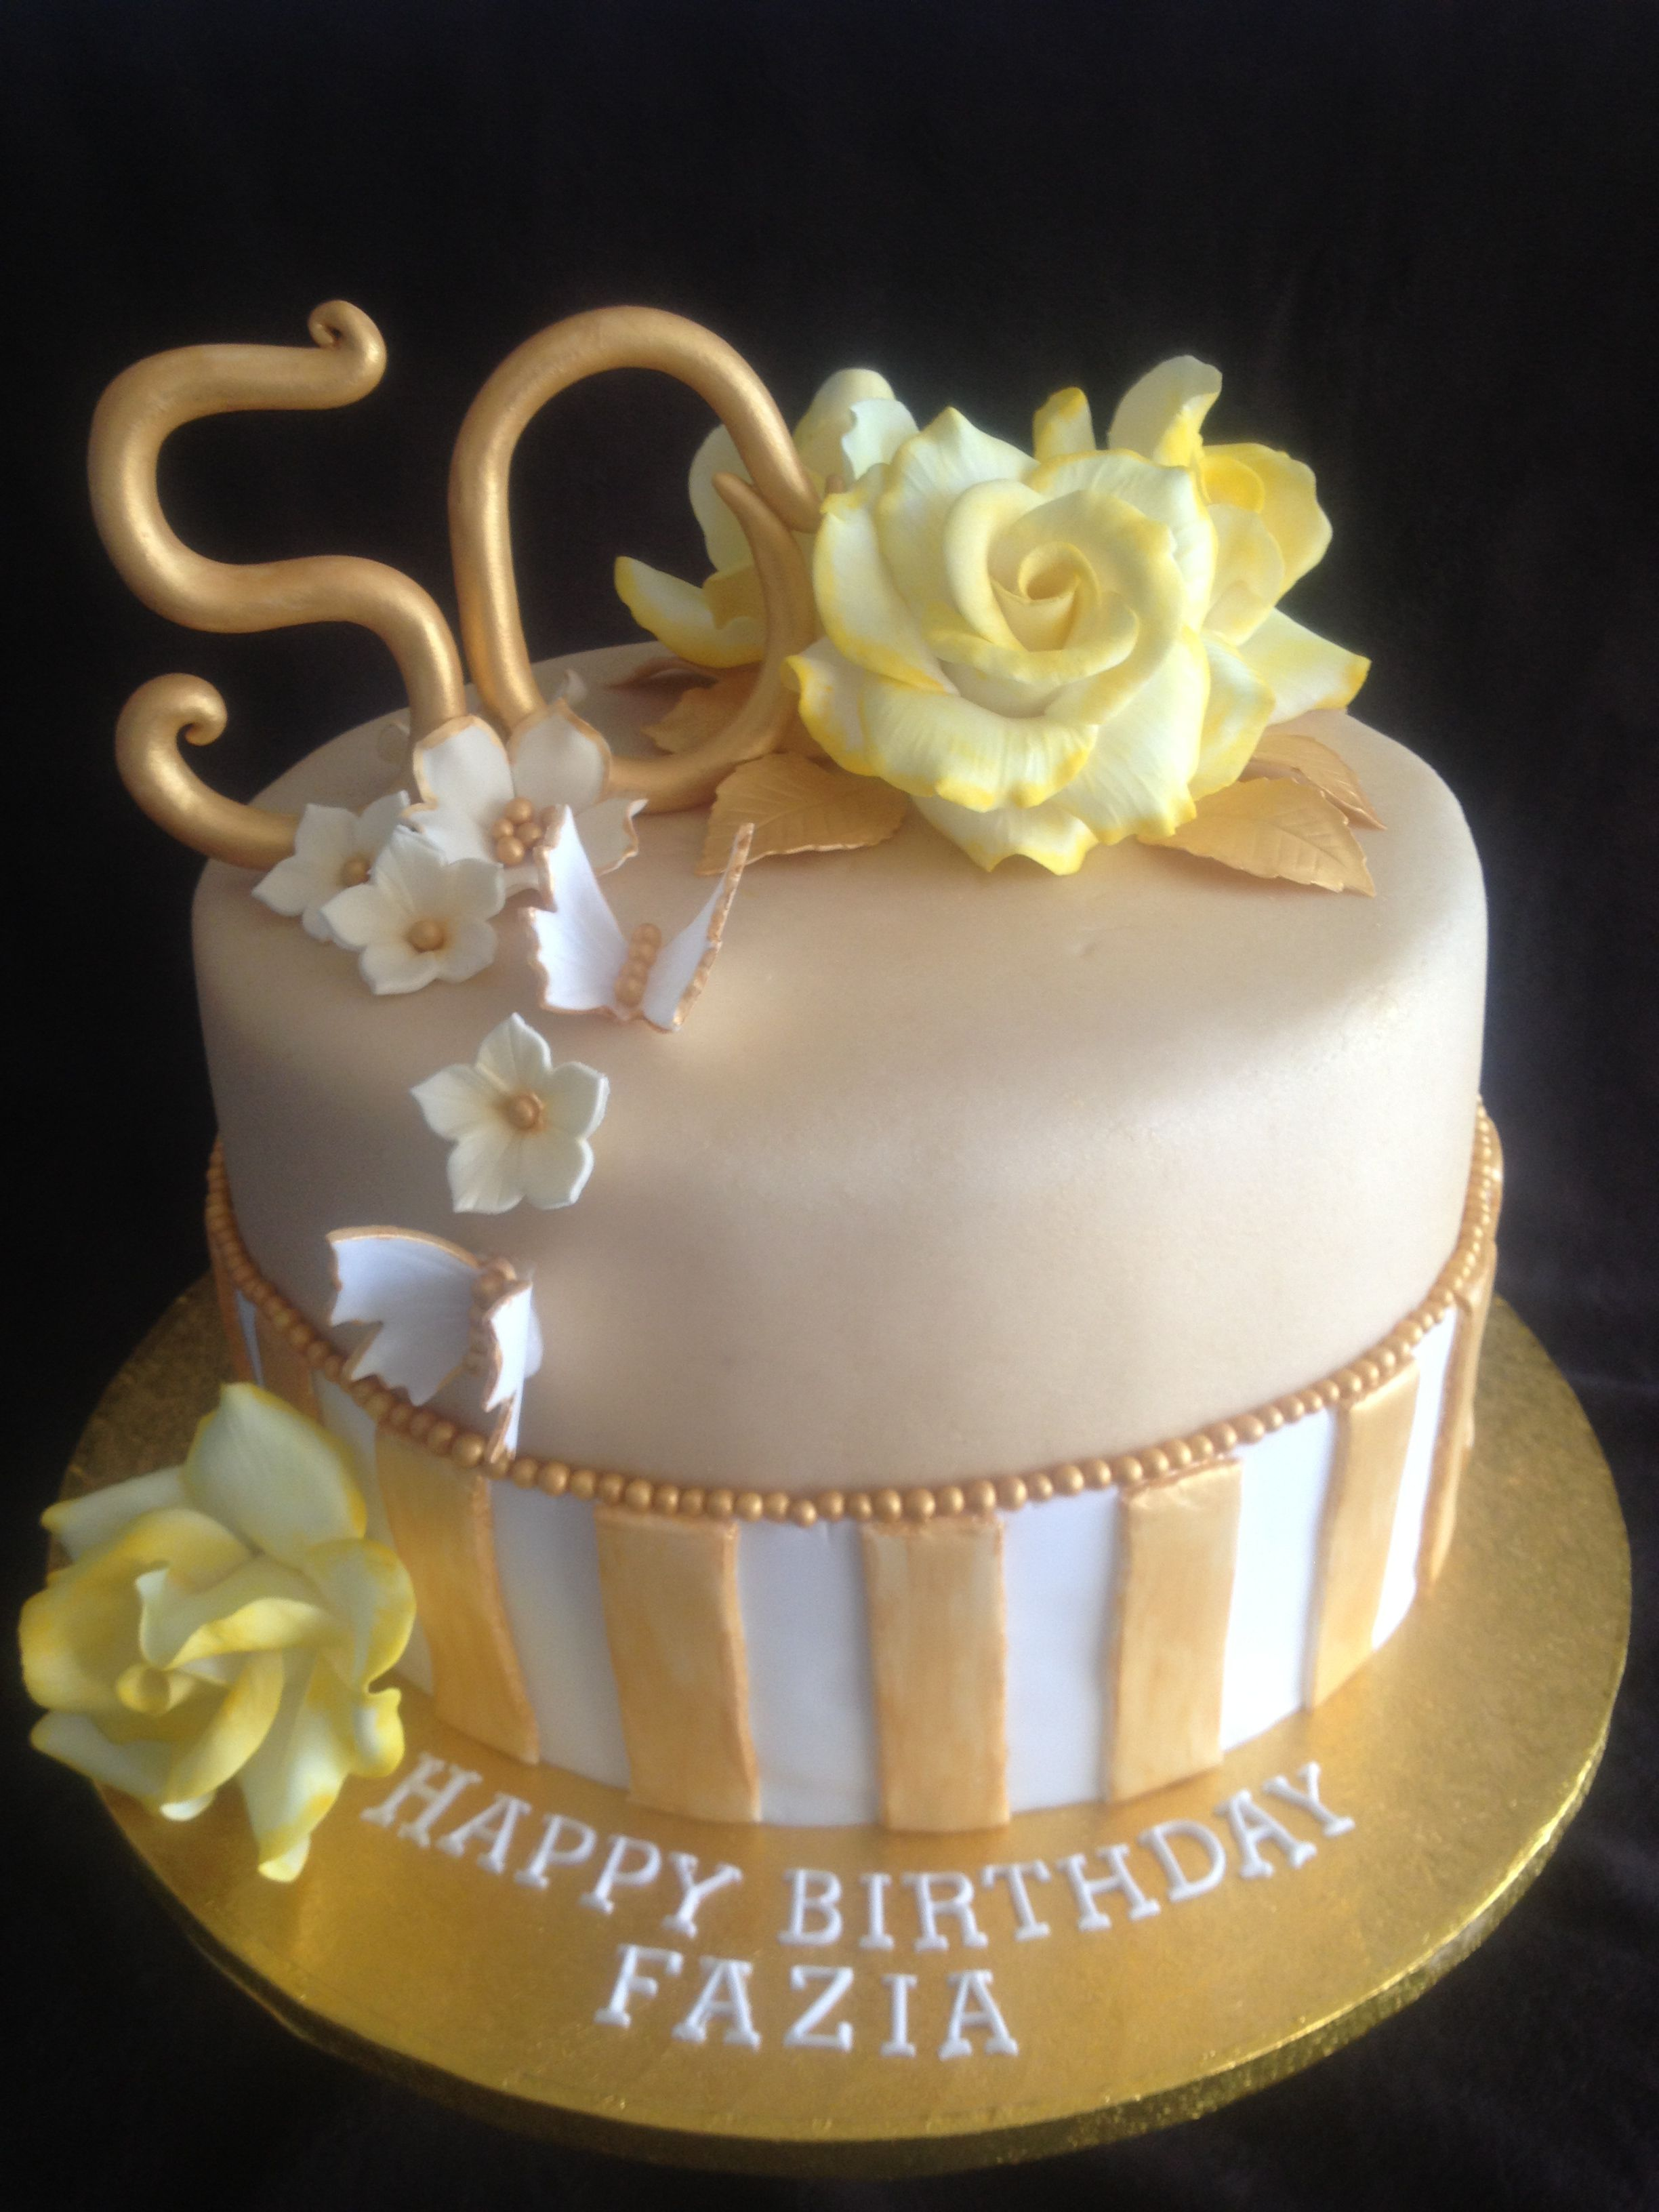 Simple 50th Birthday Cakes Design Jpg 2448 3264 50th Birthday Cake Images 50th Birthday Cake Birthday Cake Ideas For Adults Women